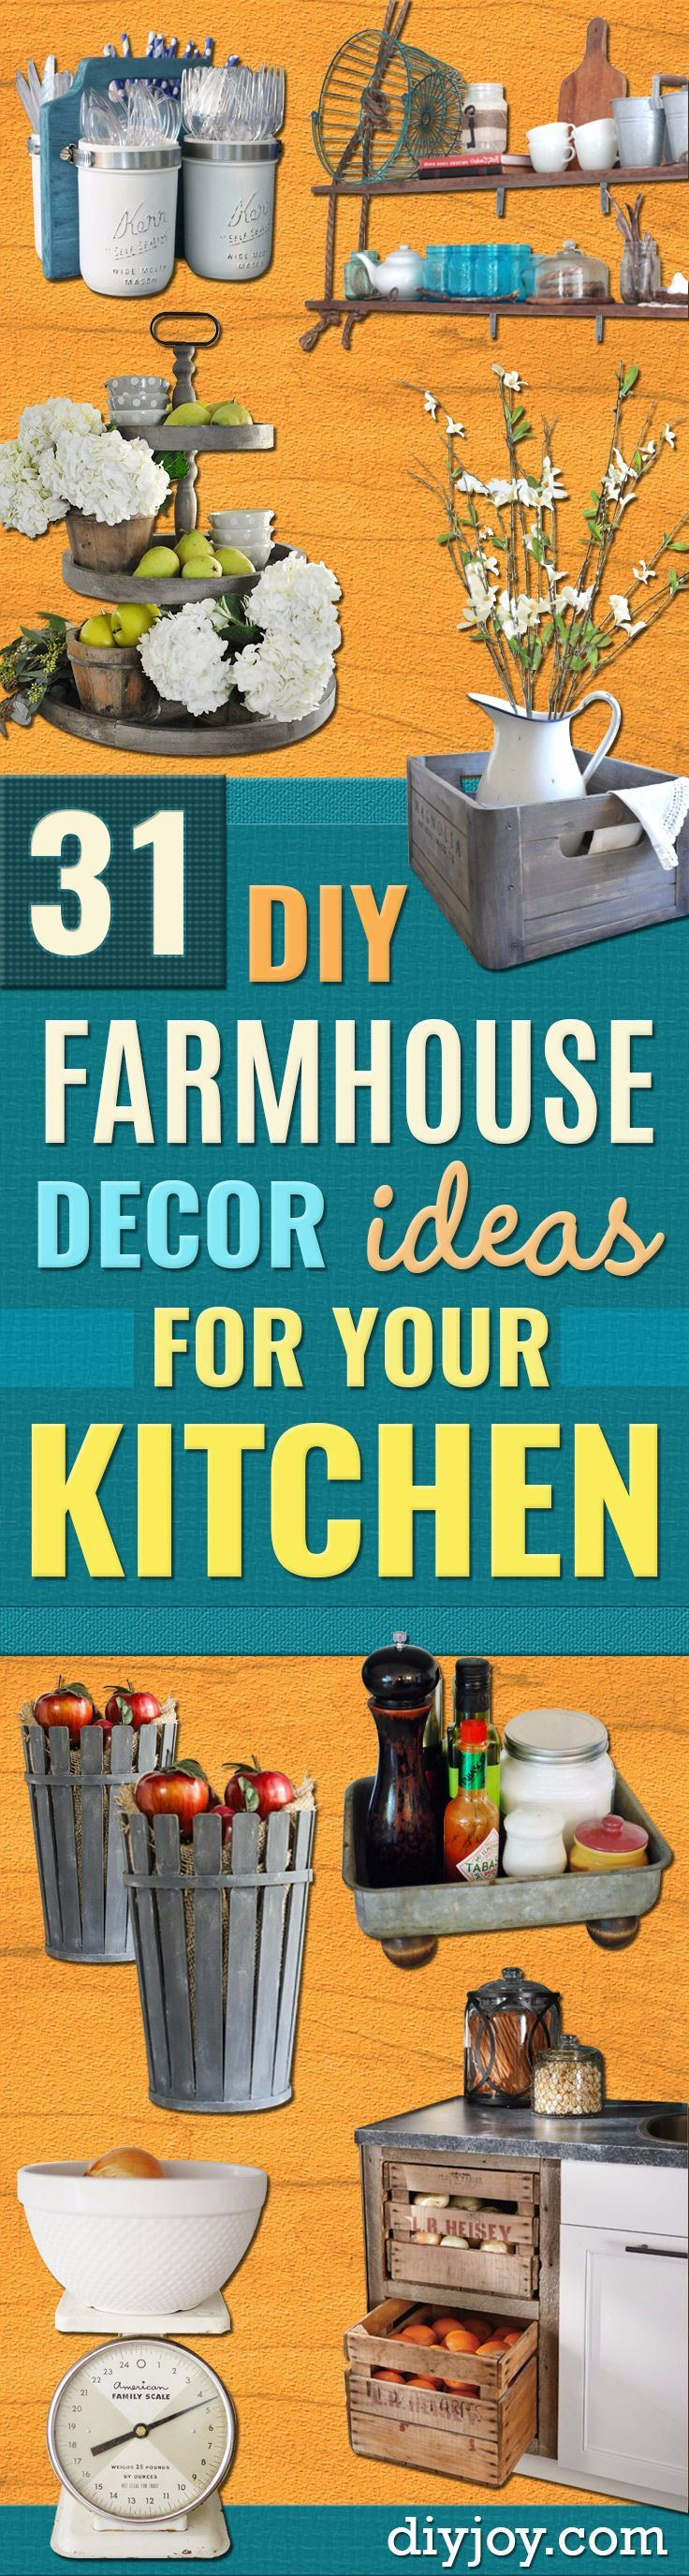 239 best Country Crafts images on Pinterest | Furniture, Decor ideas ...